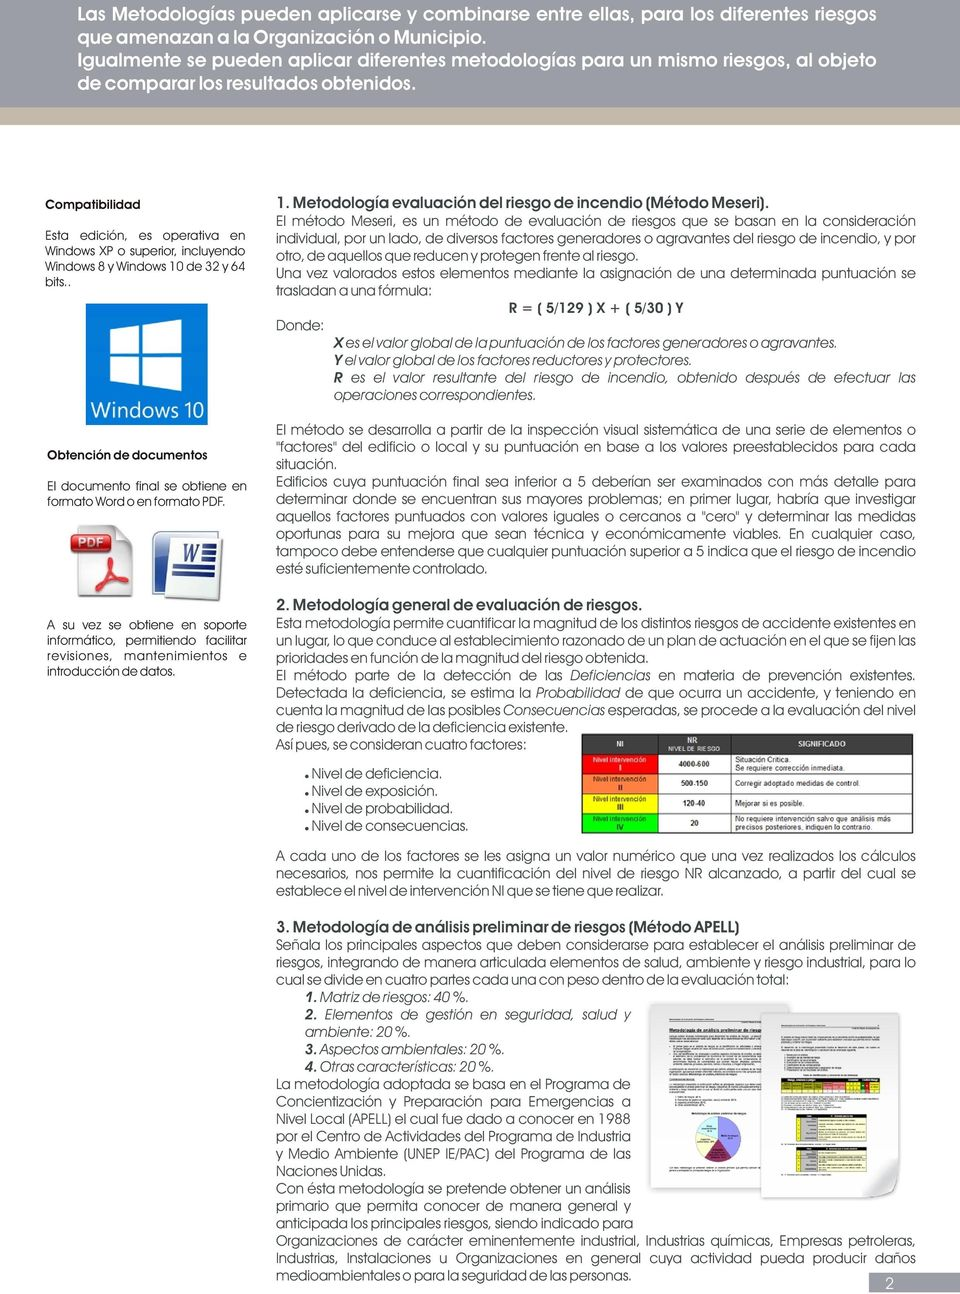 Compatibilidad Esta edición, es operativa en Windows XP o superior, incluyendo Windows 8 y Windows 10 de 32 y 64 bits.